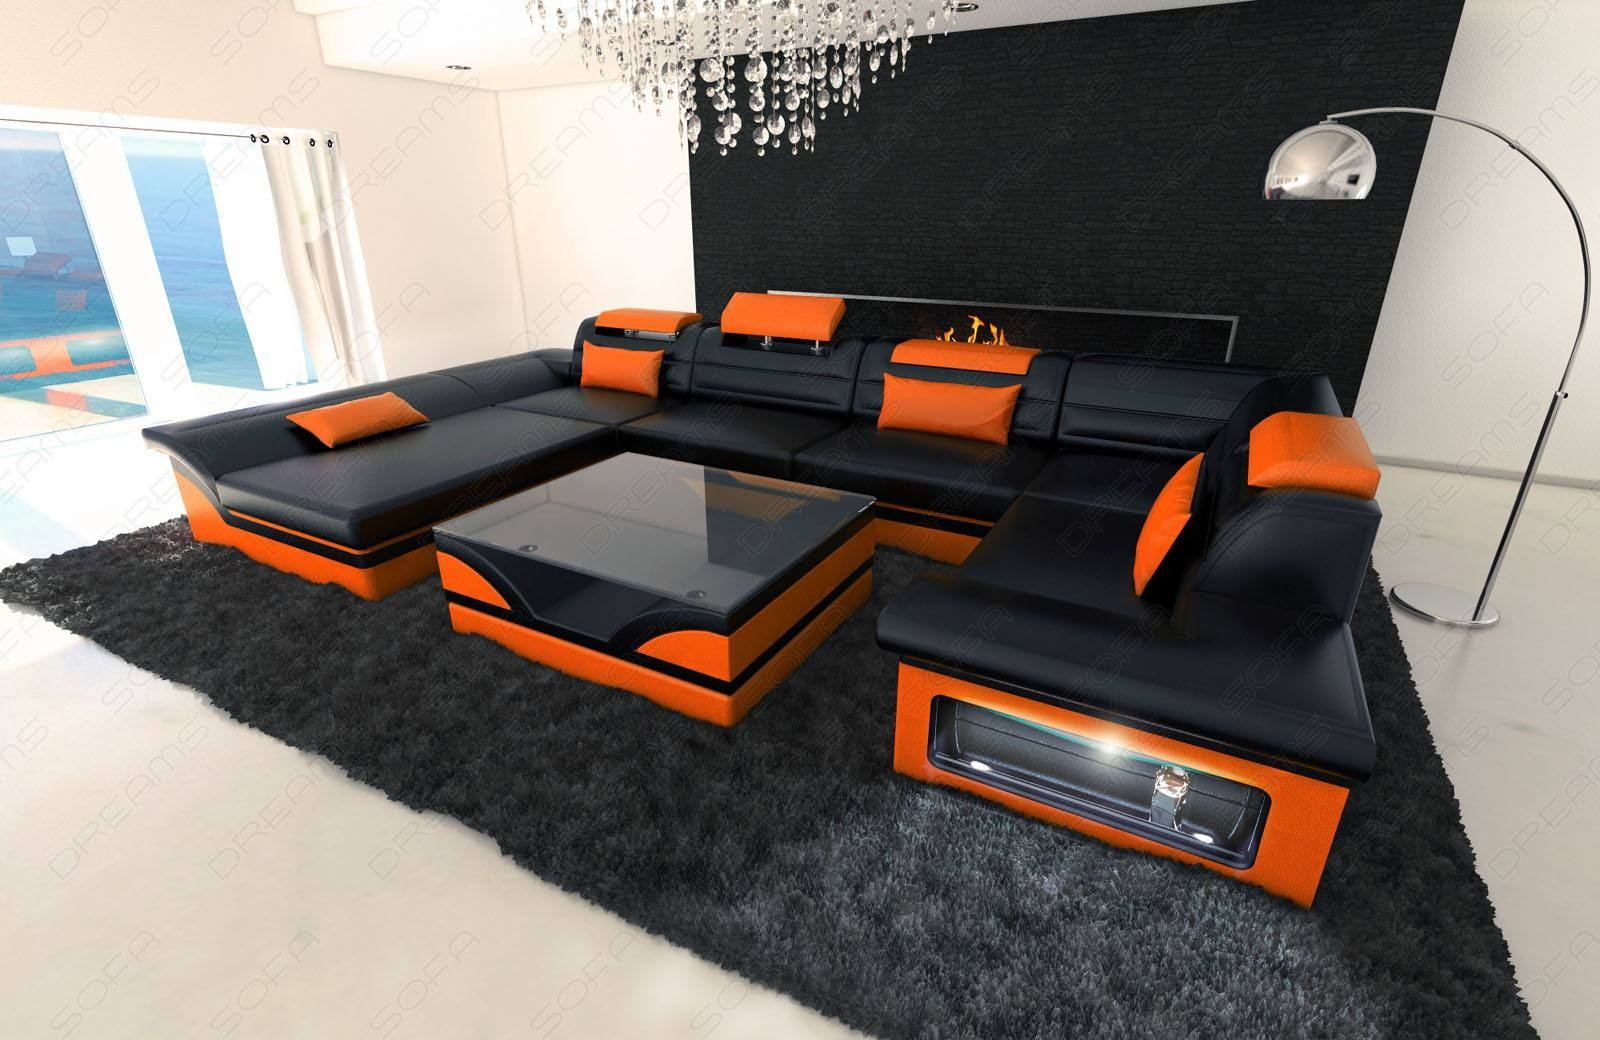 Big Sofa Xxl Schwarz Sofadreams Leather Sectional Atlanta Sofa With Led Lights Sofa Ideas